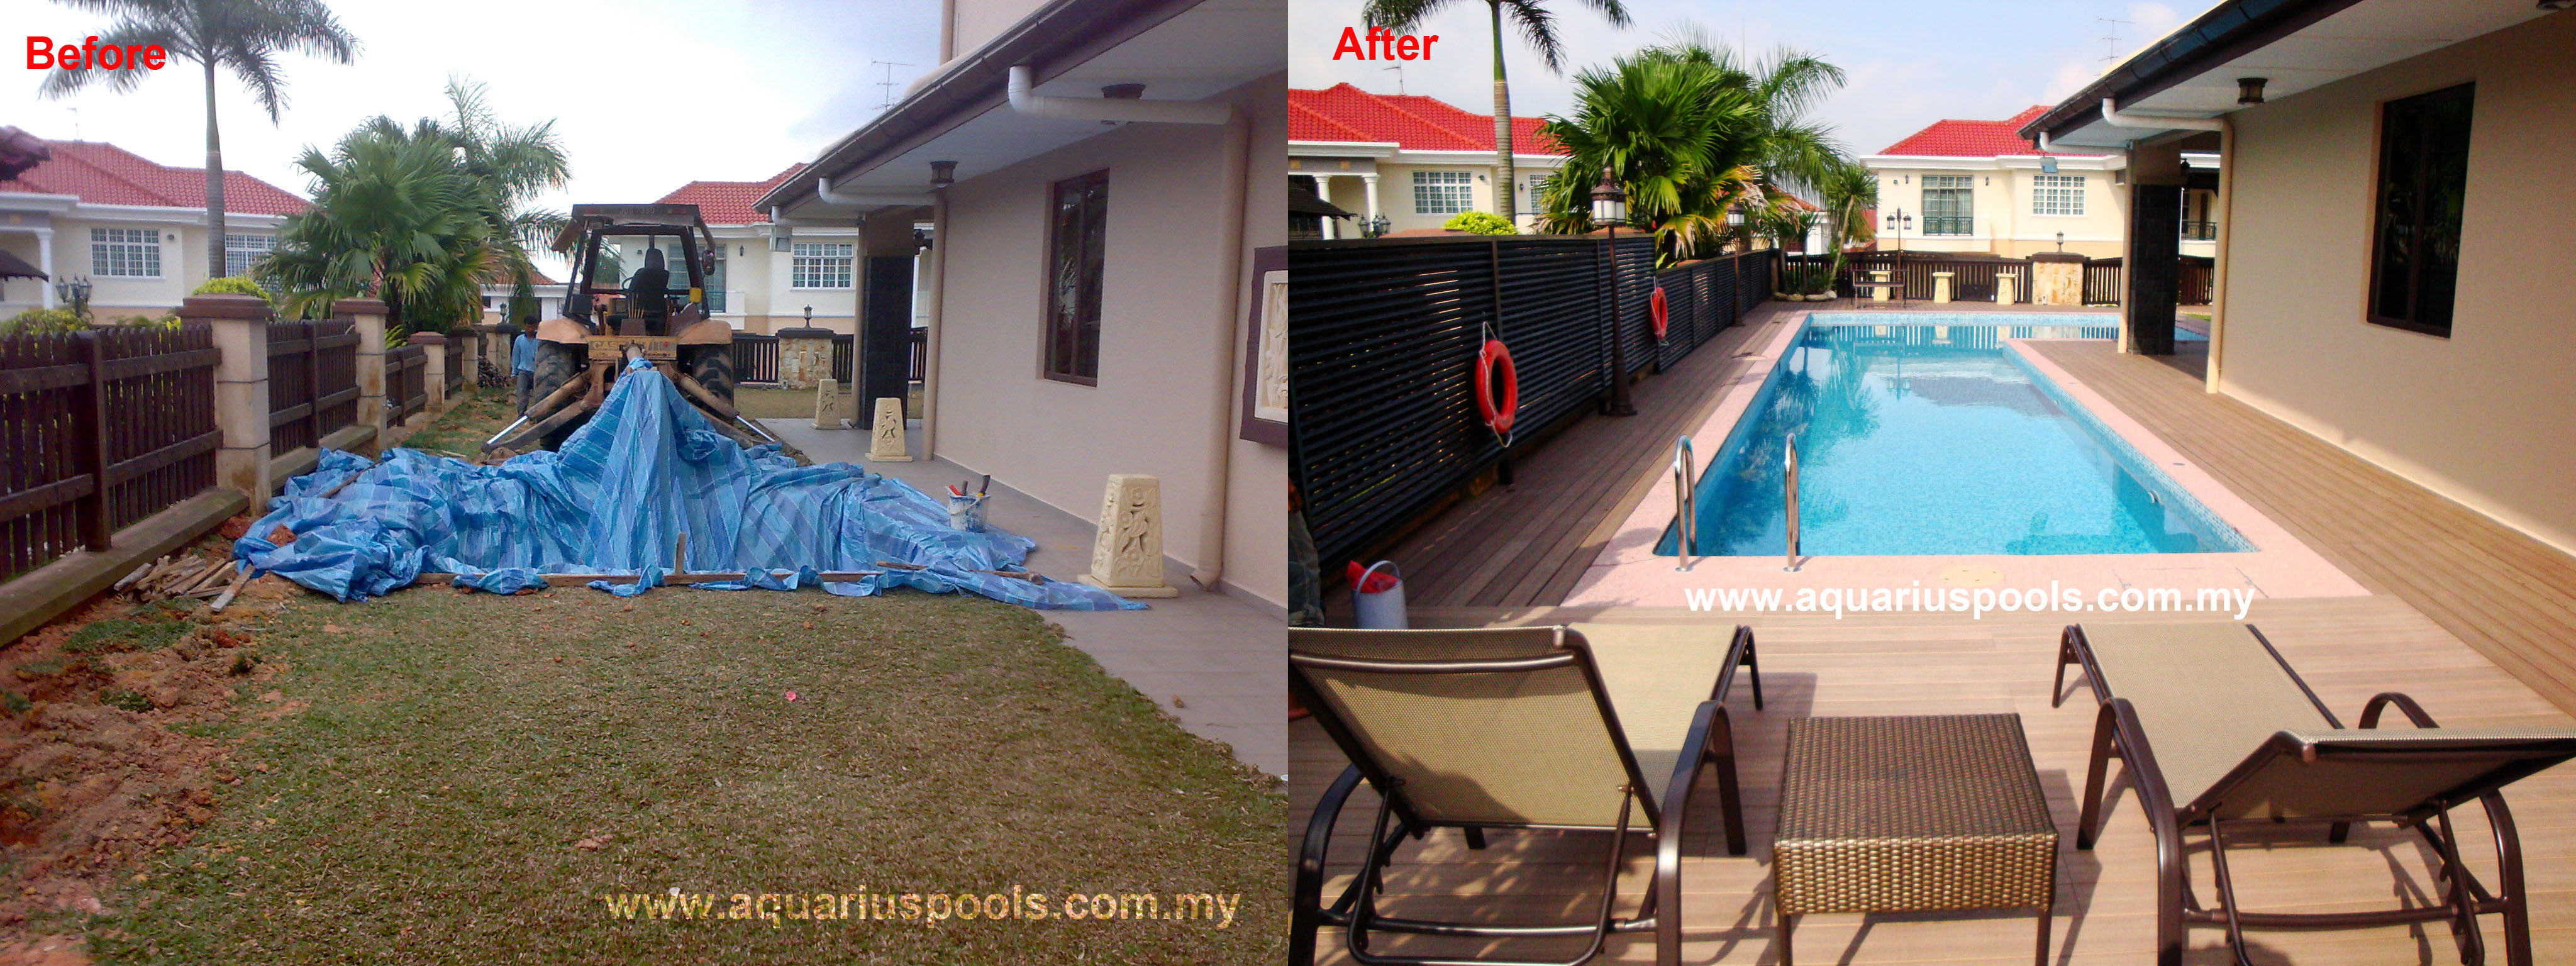 Before & After Swimming Pool Picture